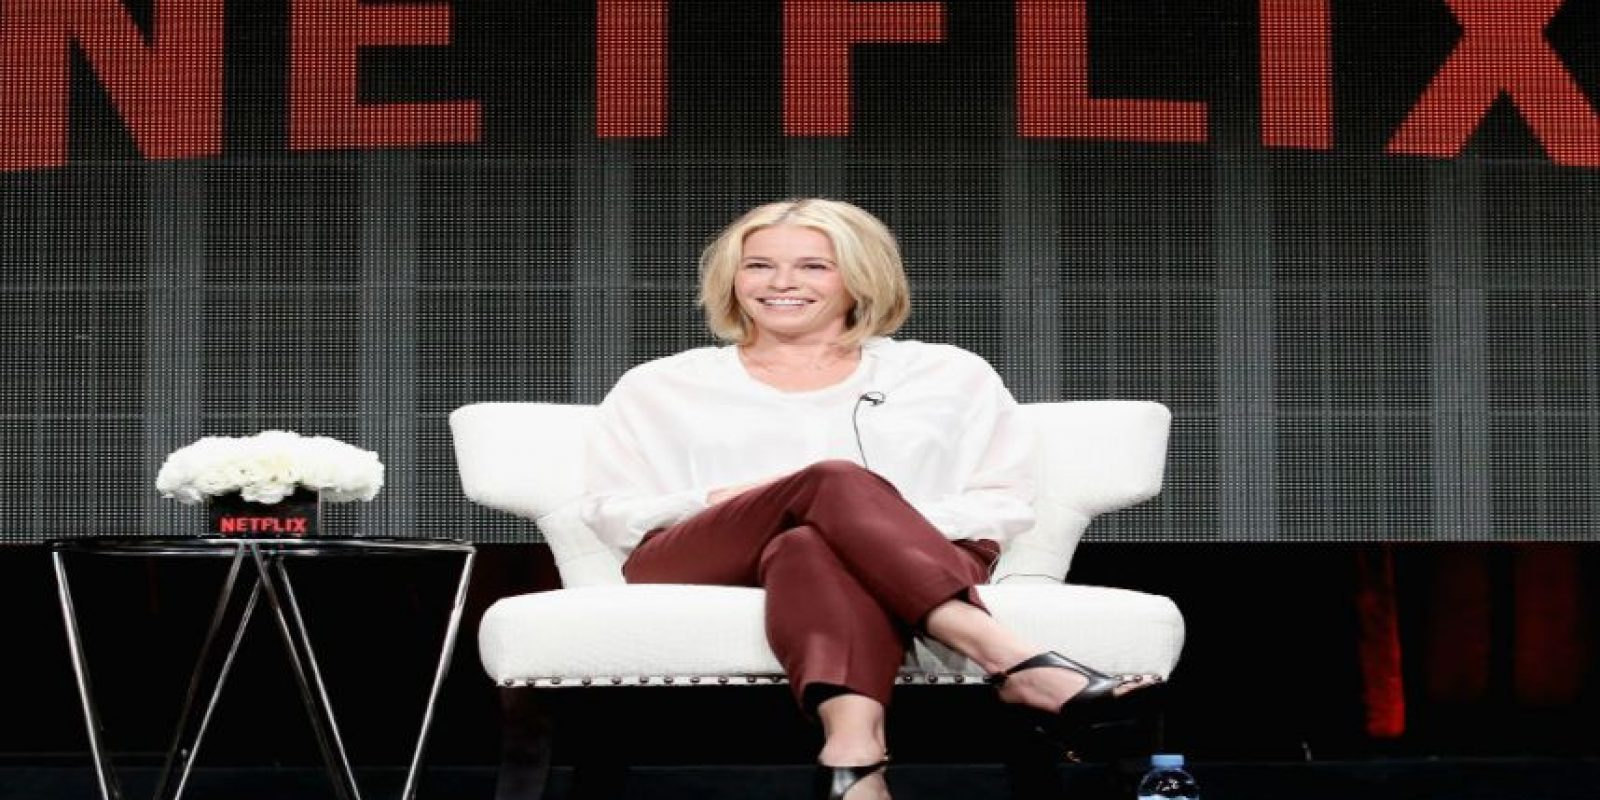 Netflix es, hasta el momento, el líder en series originales. Foto: Getty Images